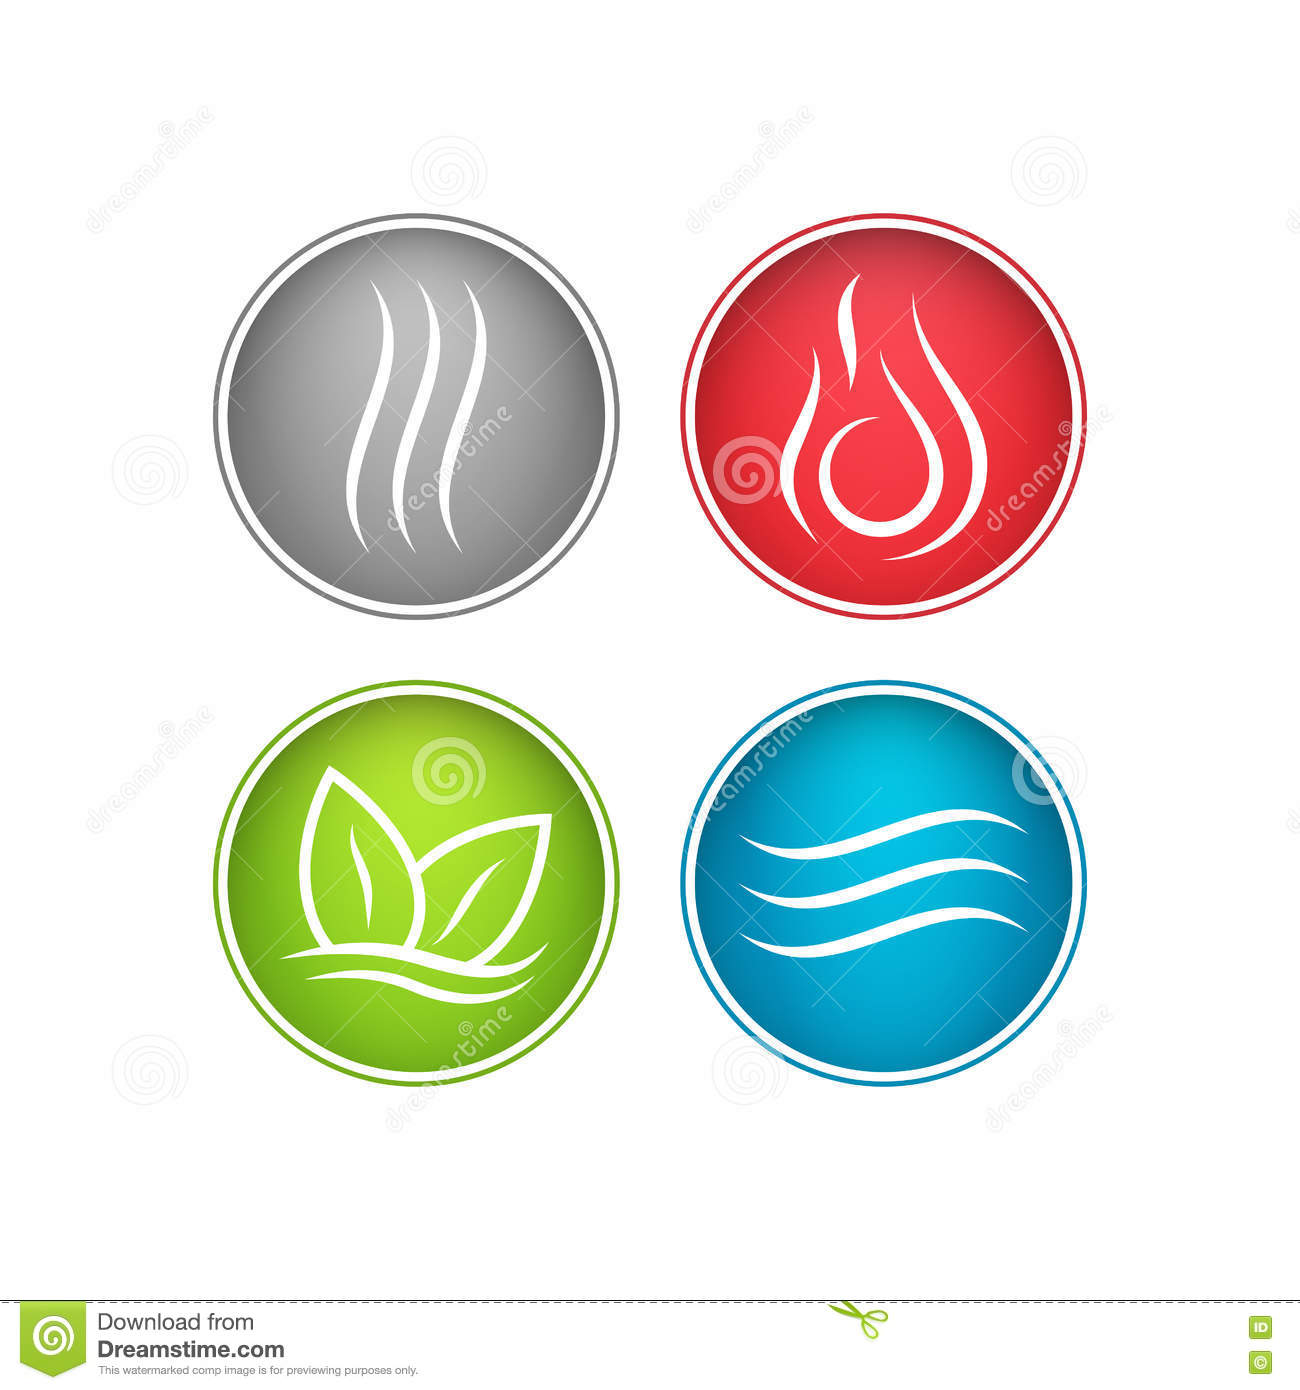 Four Vector Elements Icons Stock Vector Illustration Of Clean